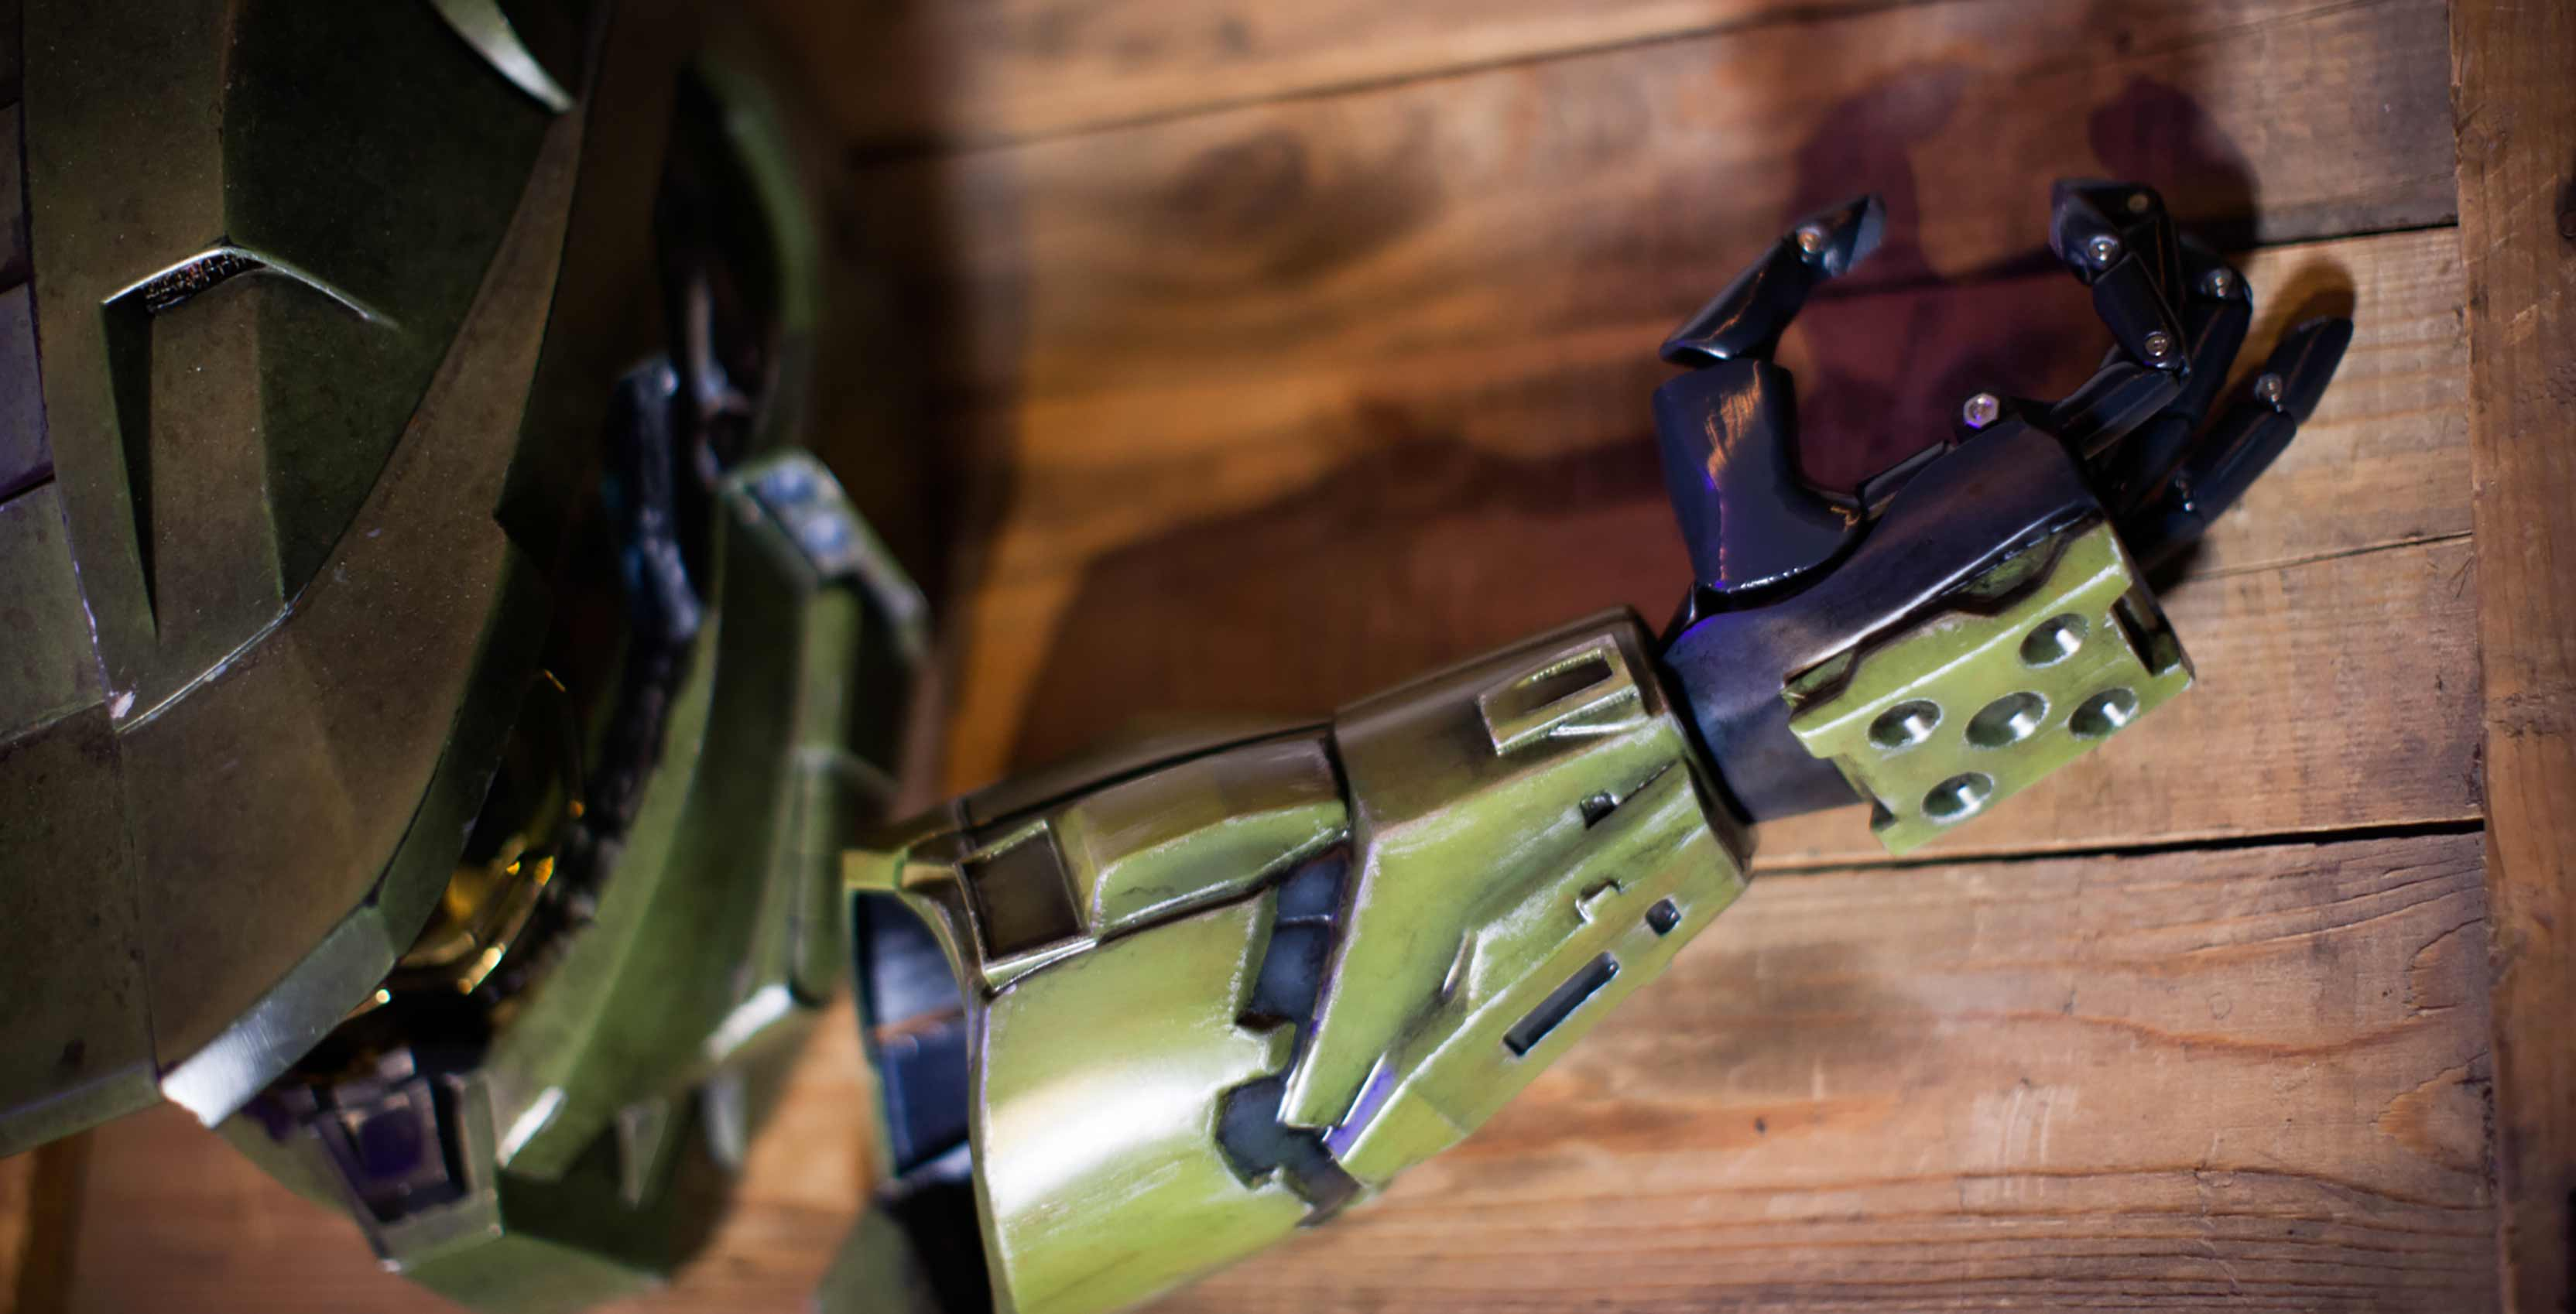 Industries and Limbitless Solutions Partner for Halo-Themed 'Bionic Arm' Prosthetic